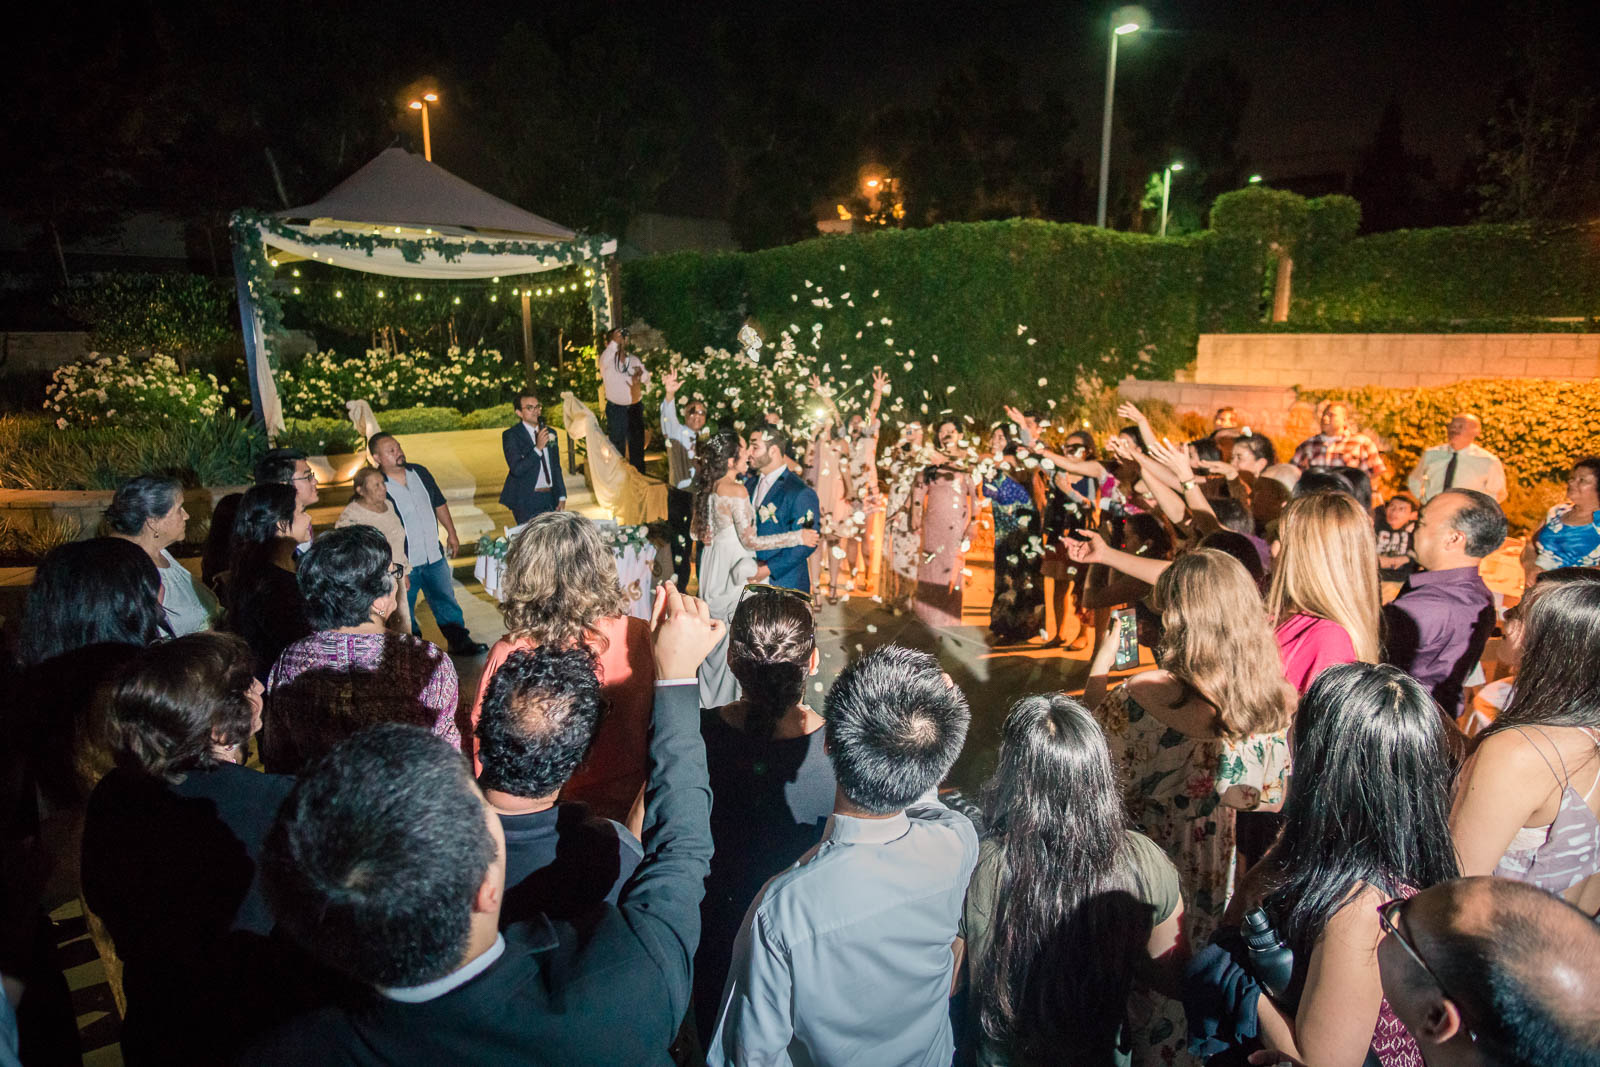 383_Angel-Brea-Orange-County_Joseph-Barber-Wedding-Photography.jpg